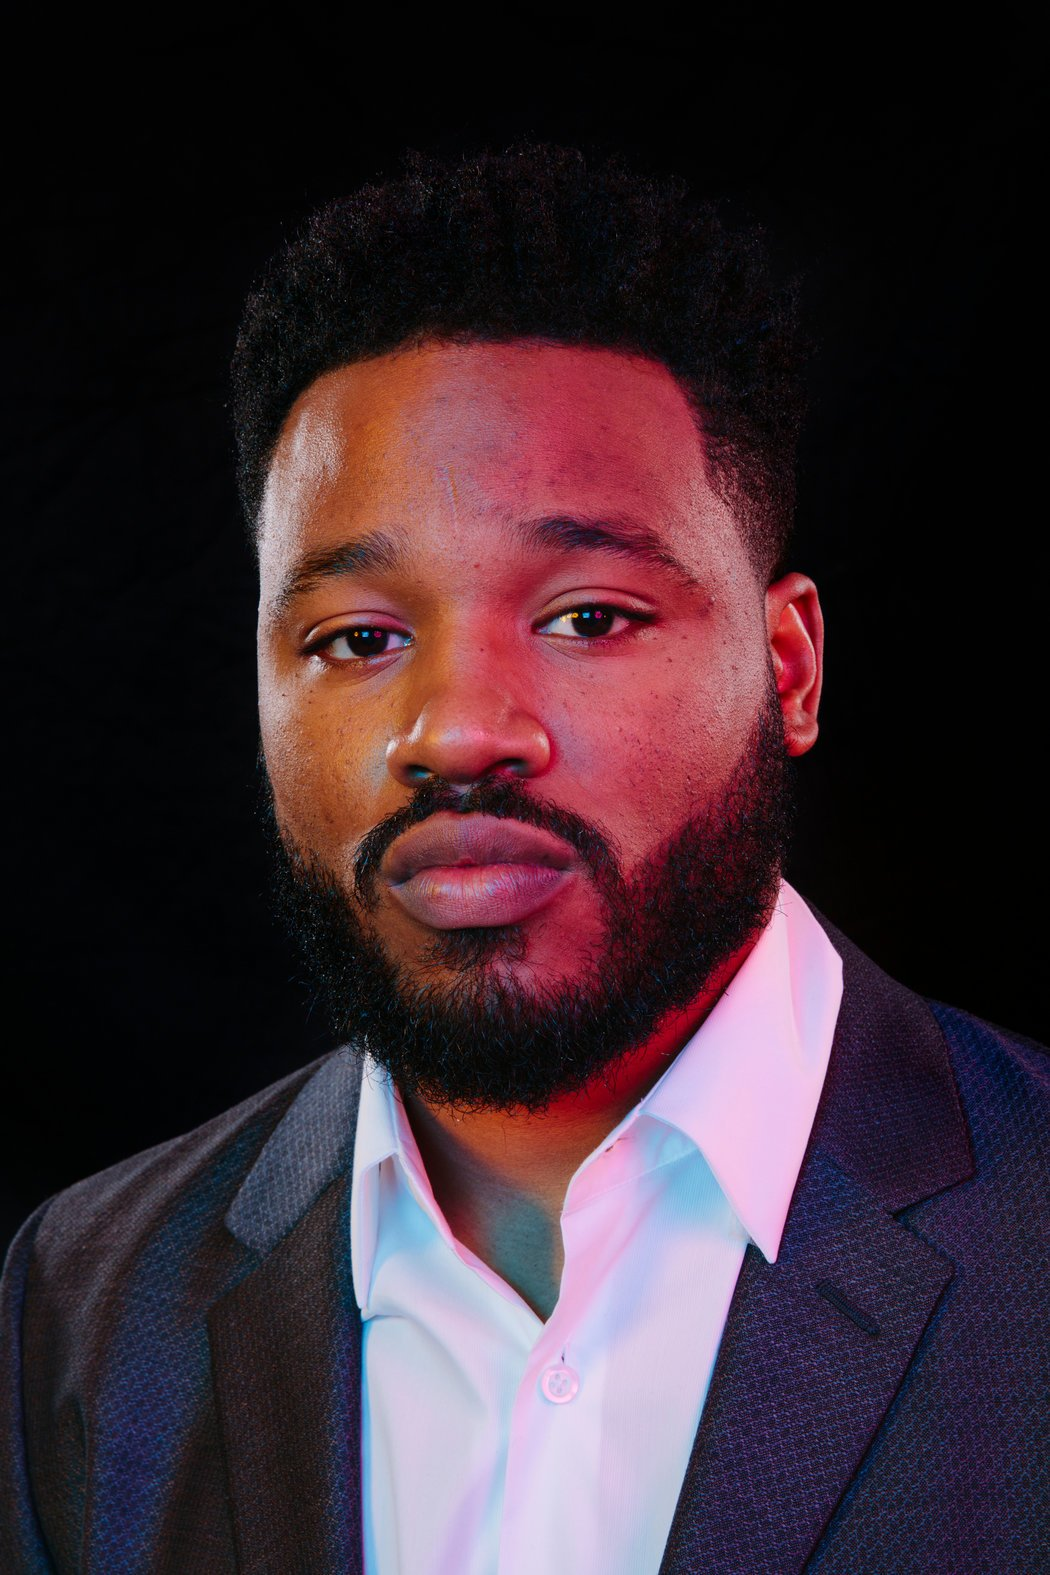 """We're Getting a """"Black Panther"""" Sequel and Ryan Coogler is Writing & Directing It 